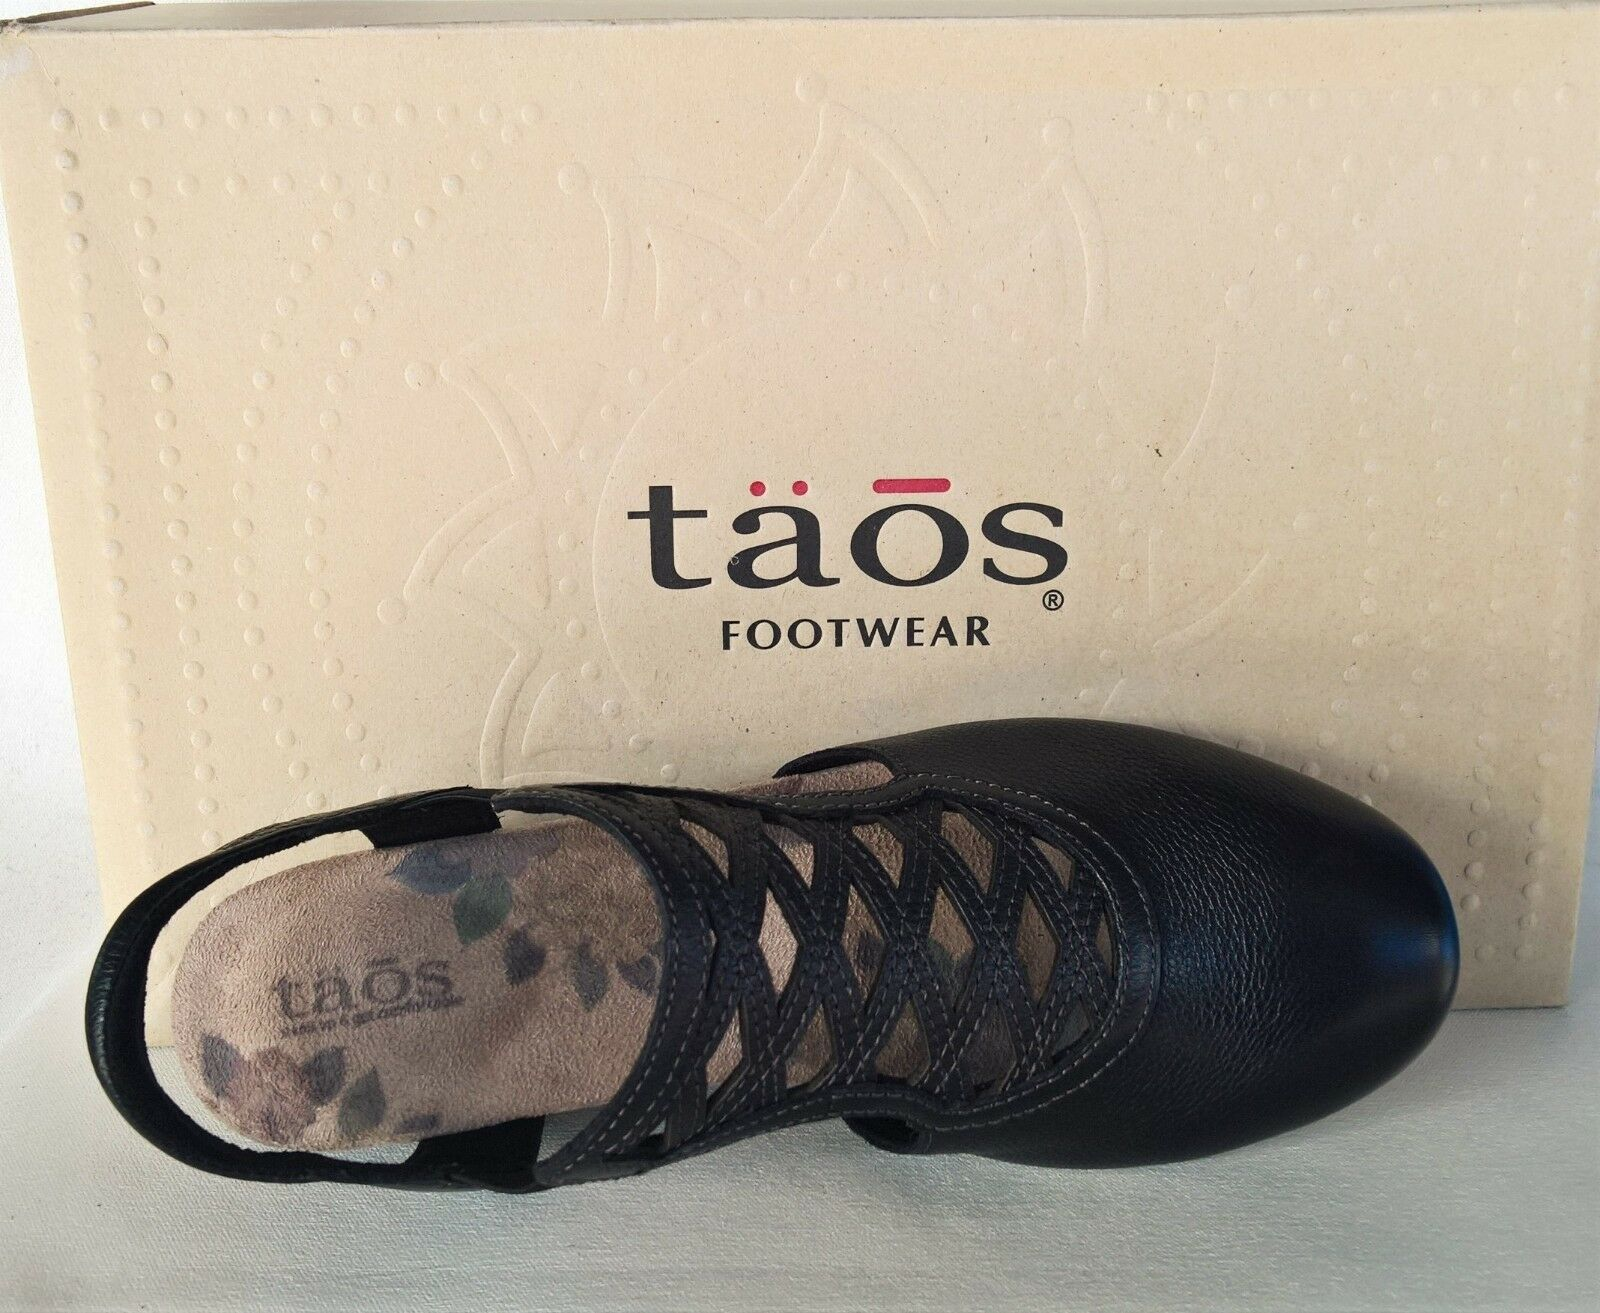 Taos schuhe Faith - leather comfort comfort leather dress heels 197a5b